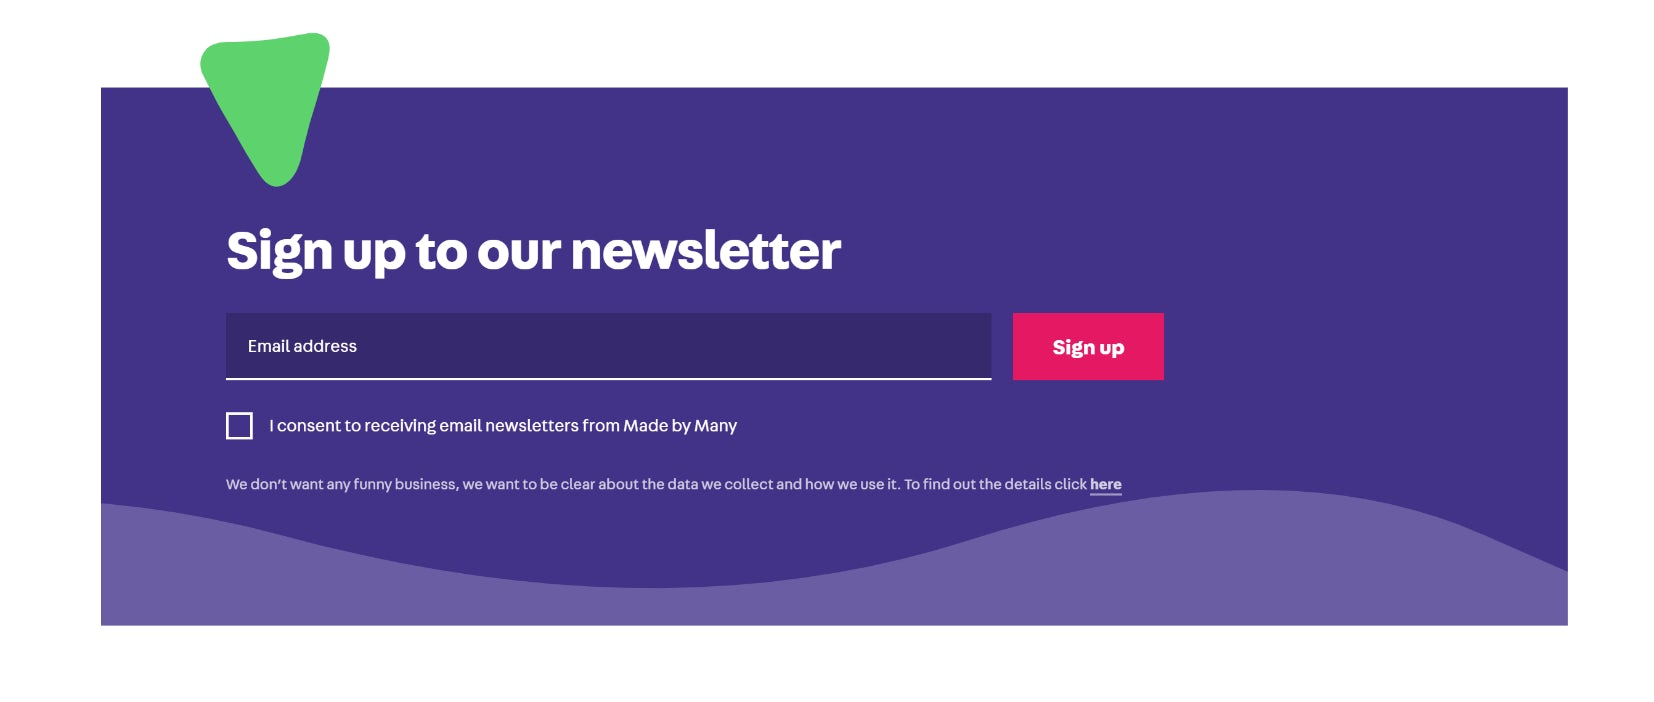 mbm-newsletter-signup